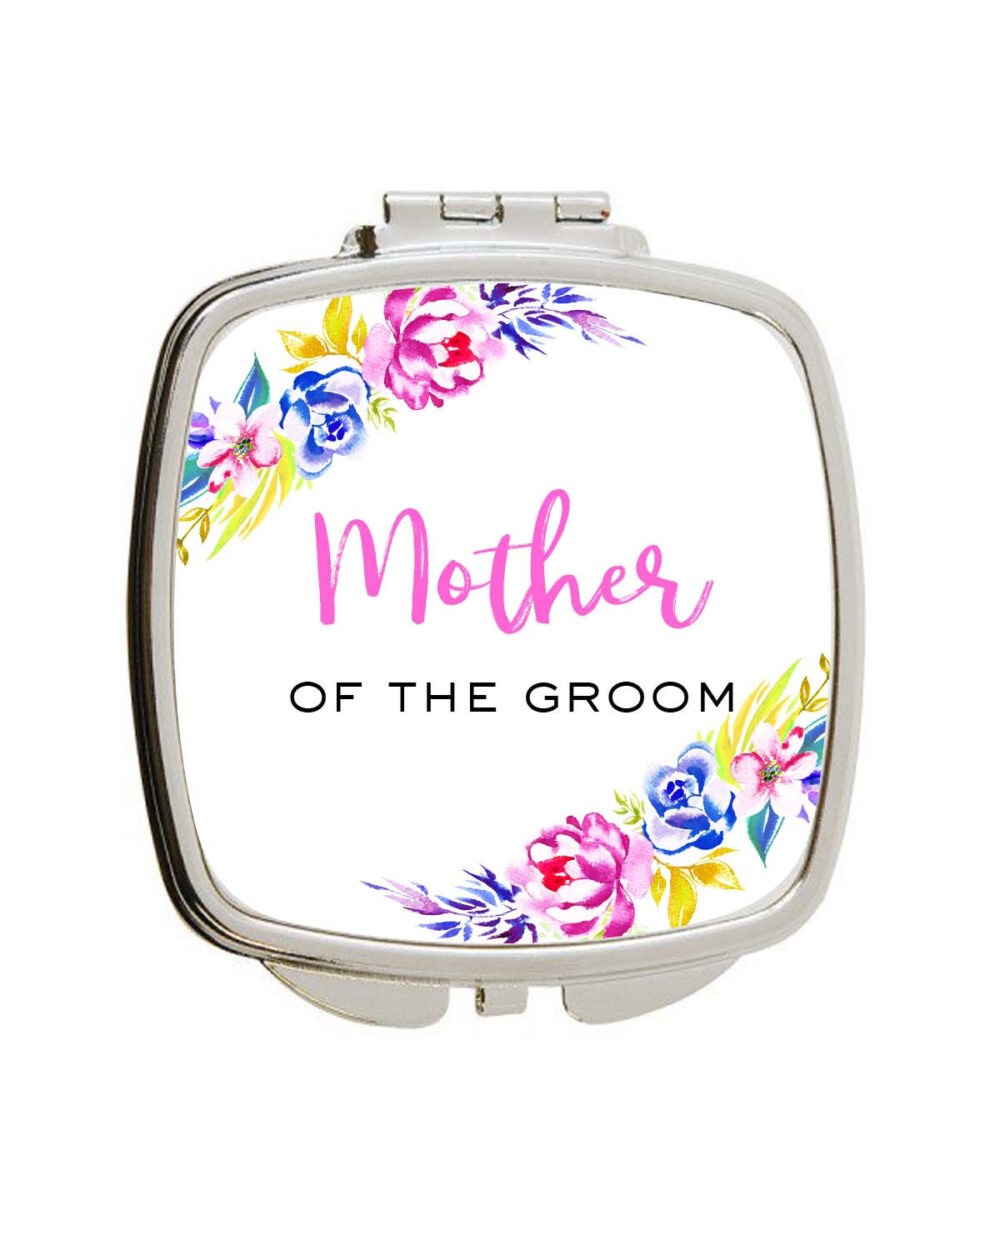 Wedding Party Gift For Mother Of The Groom Compact Mirror Personalized Bridal Gift Custom Personalized Name in Any Color